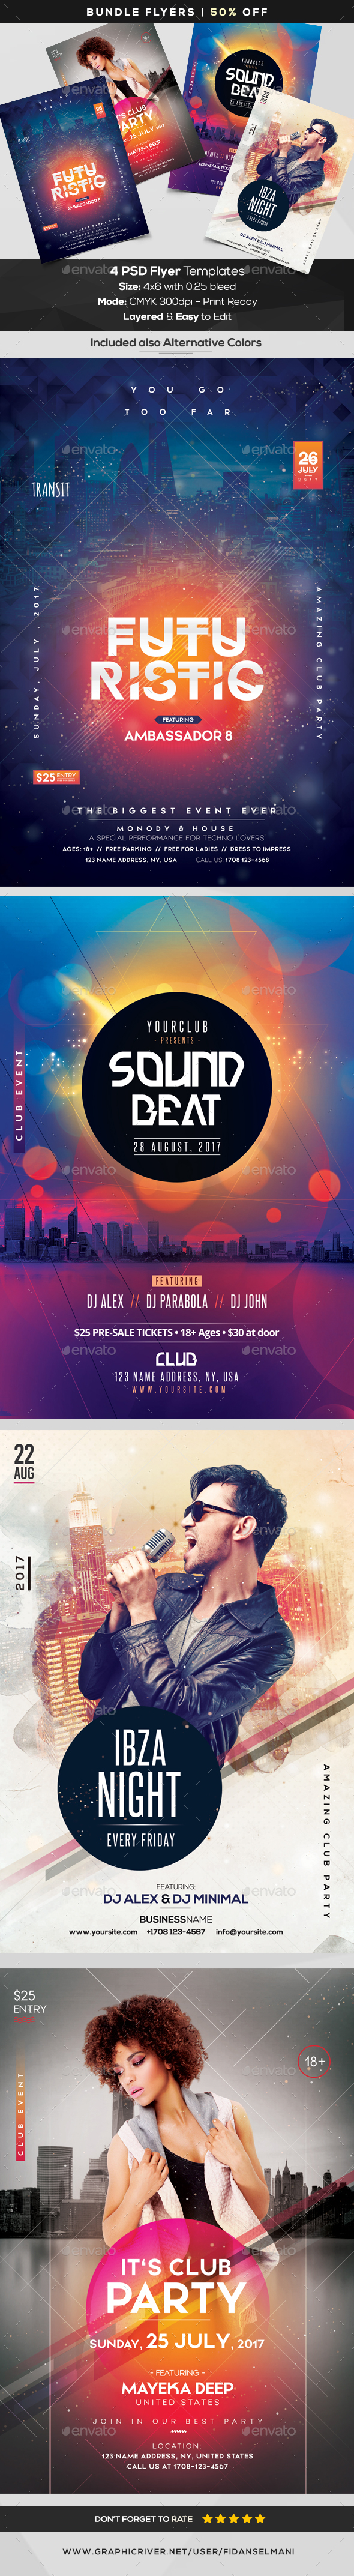 4 Event Flyers | BUNDLE 50% OFF - Flyers Print Templates